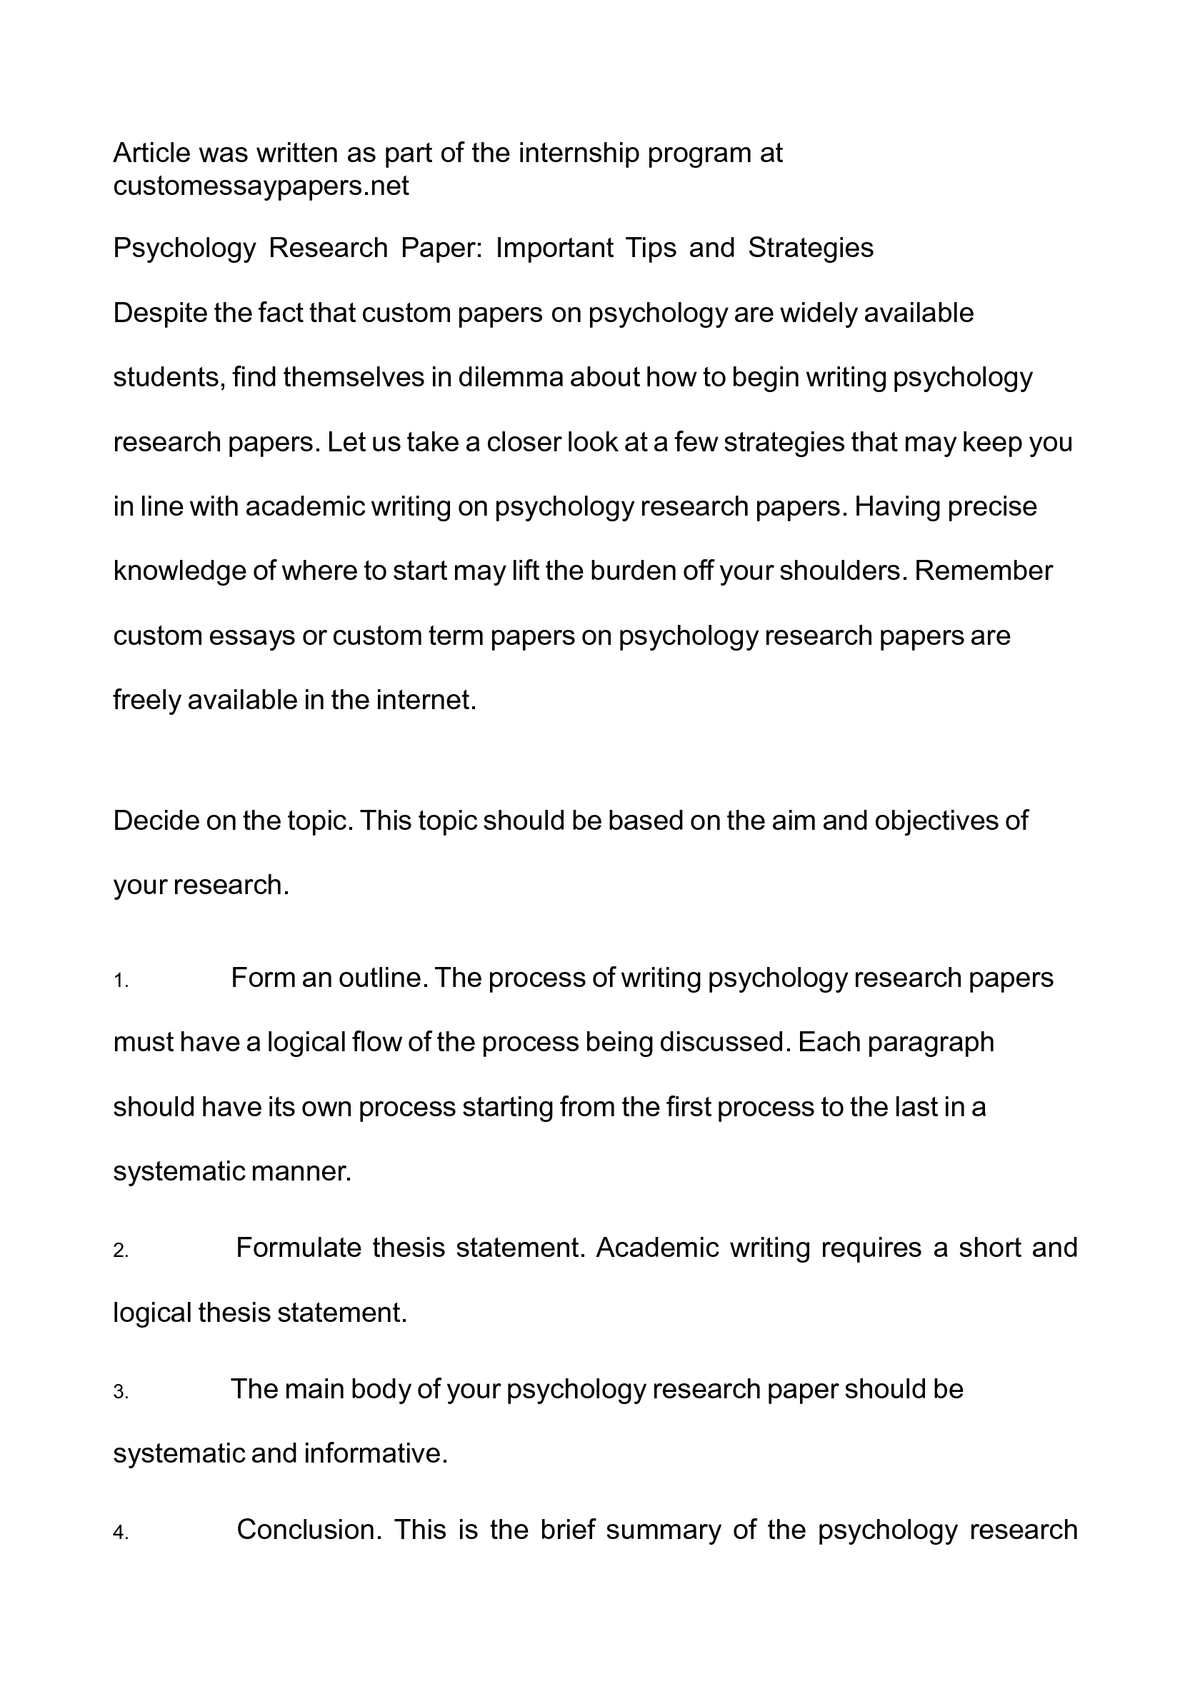 019 Psychology Research Paper Topics Striking For High School Students Reddit Full